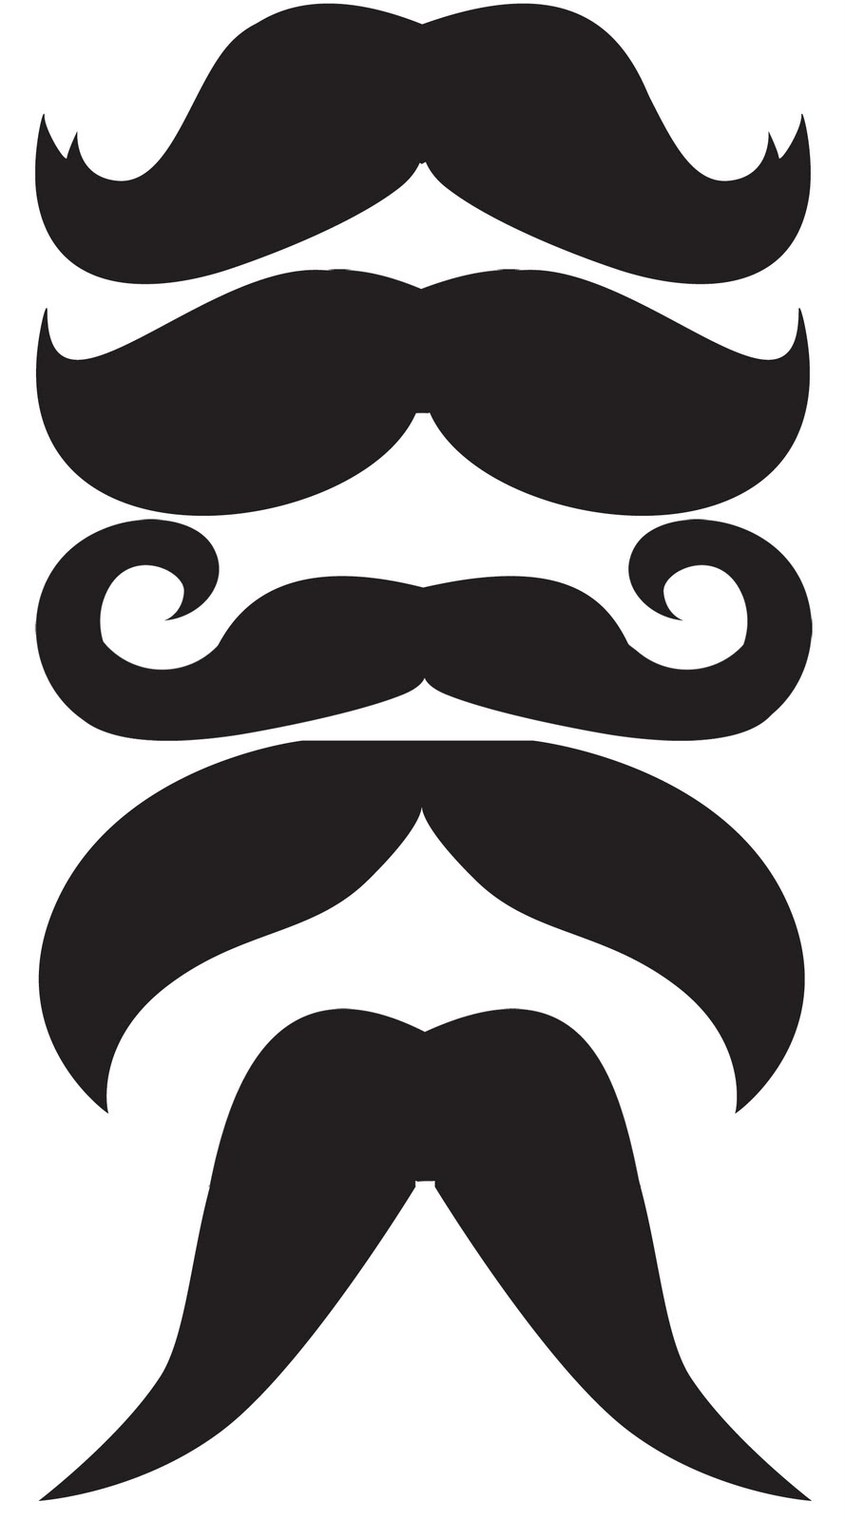 Oh boy clipart stock Oh Boy Mustaches Bow Ties Crafting Moo Clipart - Clip Art Library stock